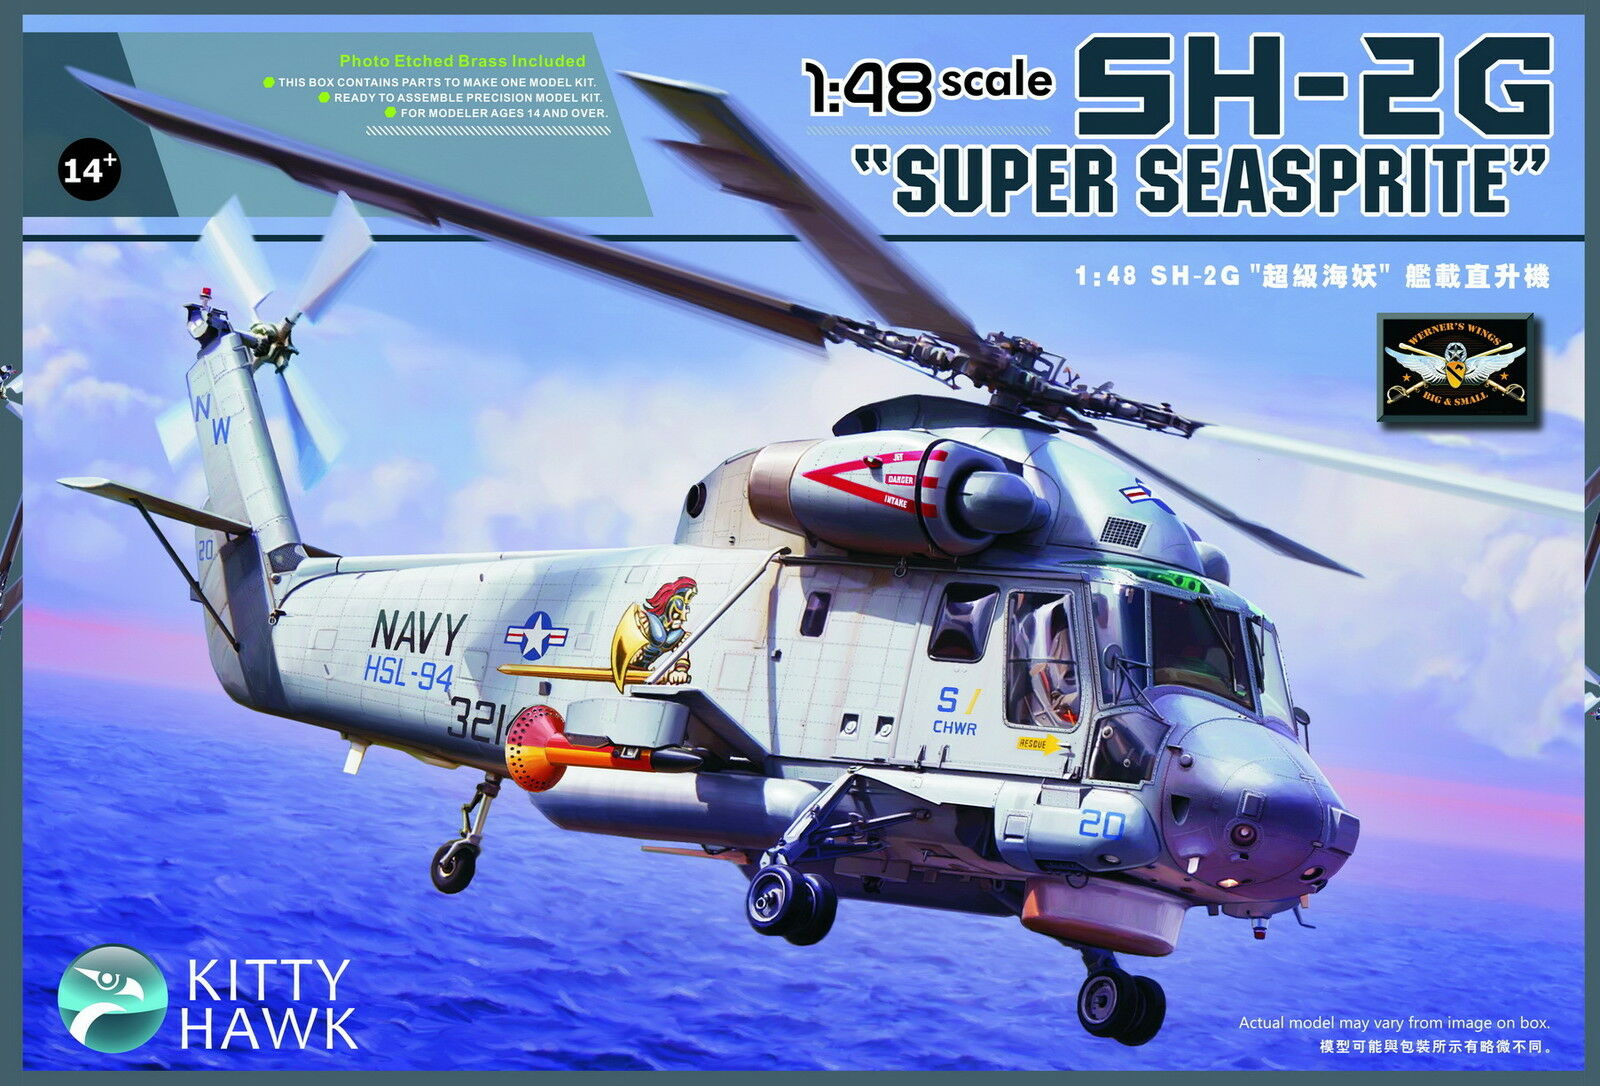 Kitty Hawk 1 48 Kaman Sh-2g Super Seasprite  80126